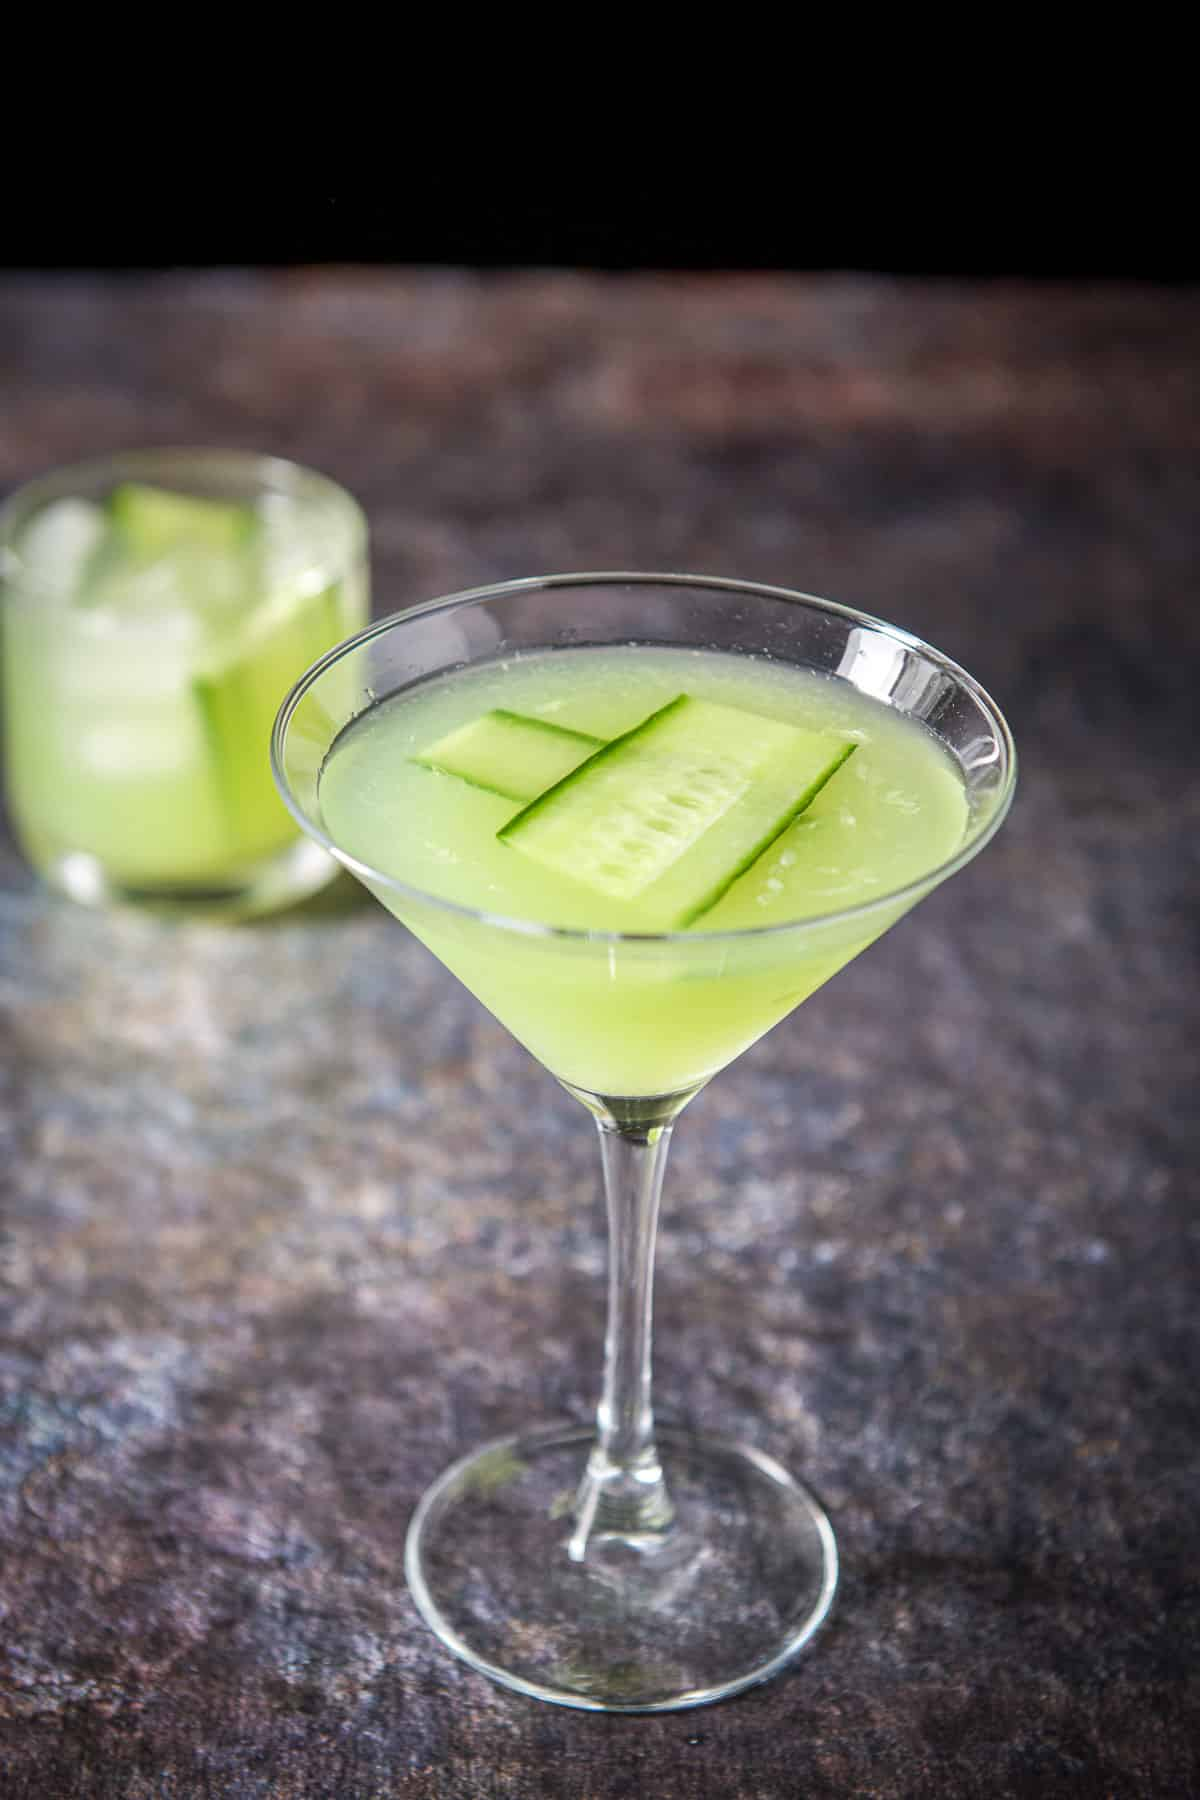 A classic martini glass filled with the cucumber cocktail with a double old fashioned glass in the back